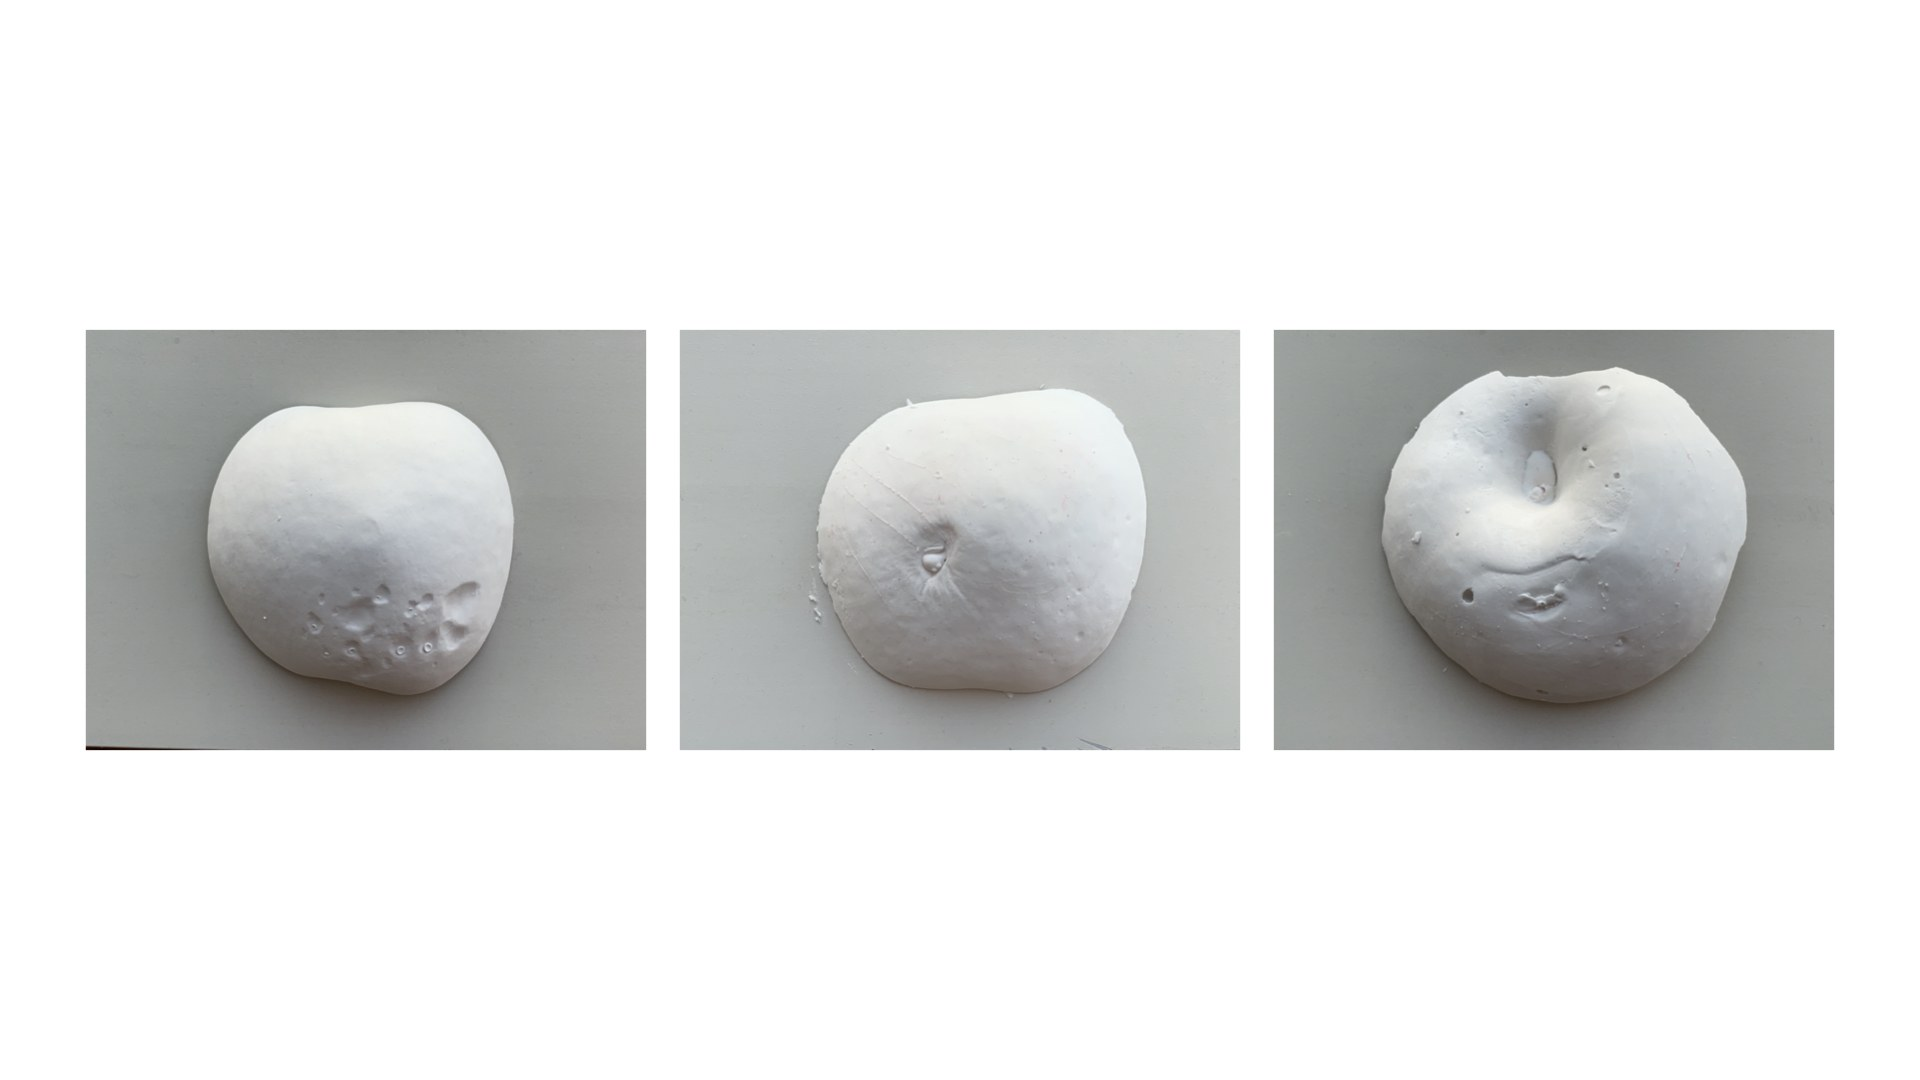 casting blemishes with using plaster